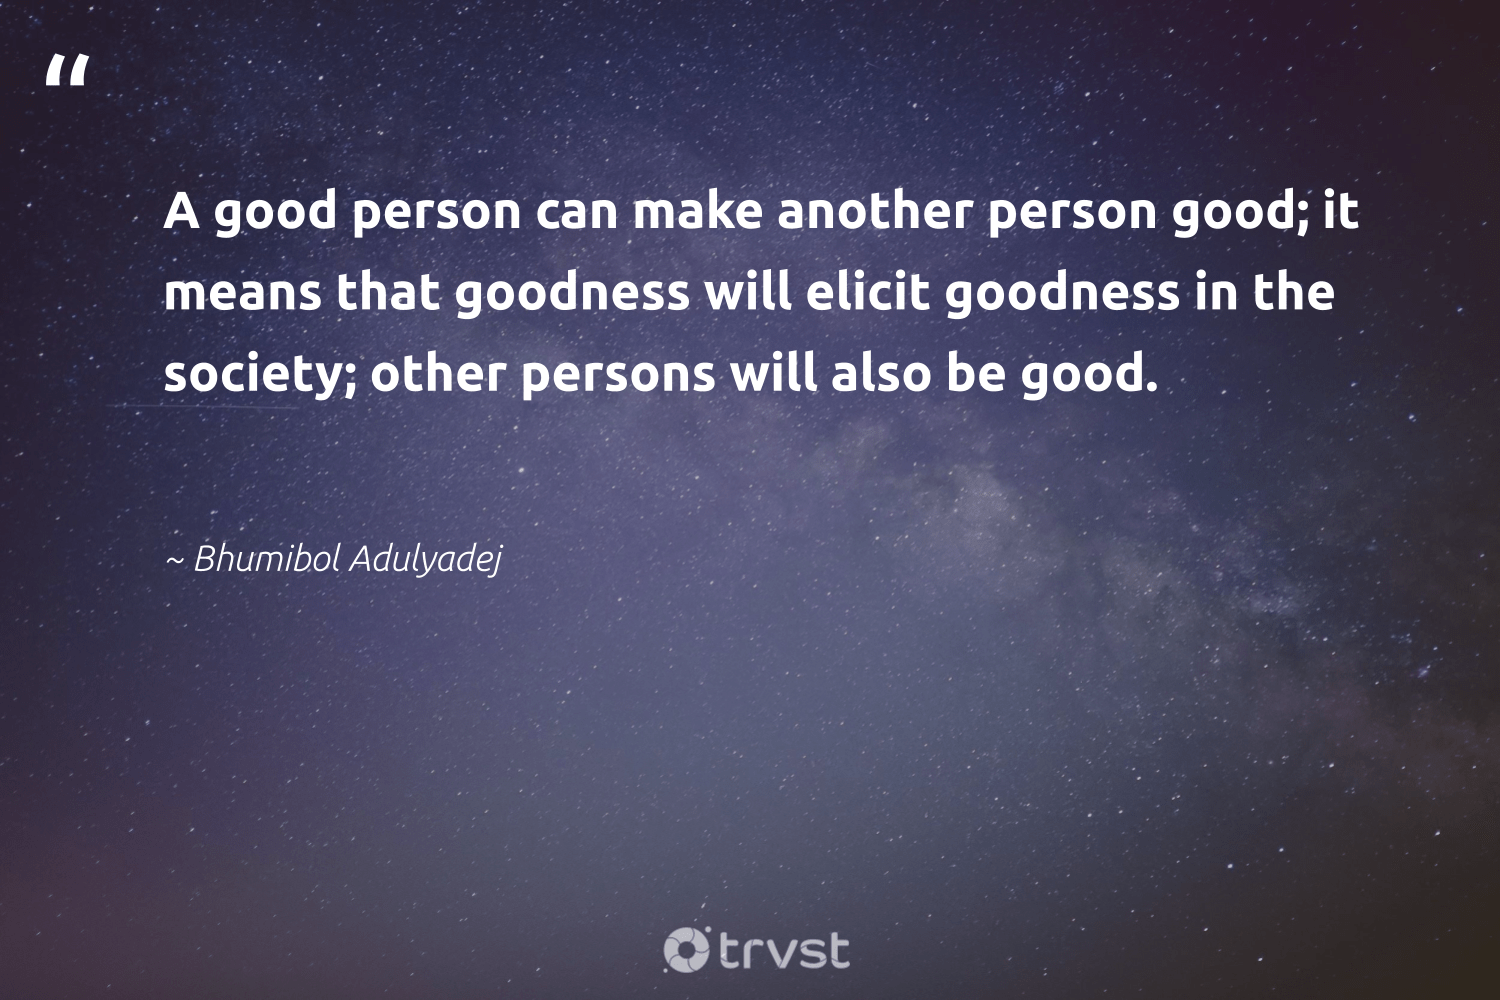 """""""A good person can make another person good; it means that goodness will elicit goodness in the society; other persons will also be good.""""  - Bhumibol Adulyadej #trvst #quotes #equalopportunity #takeaction #socialchange #changetheworld #giveback #impact #communities #thinkgreen #dogood #bethechange"""